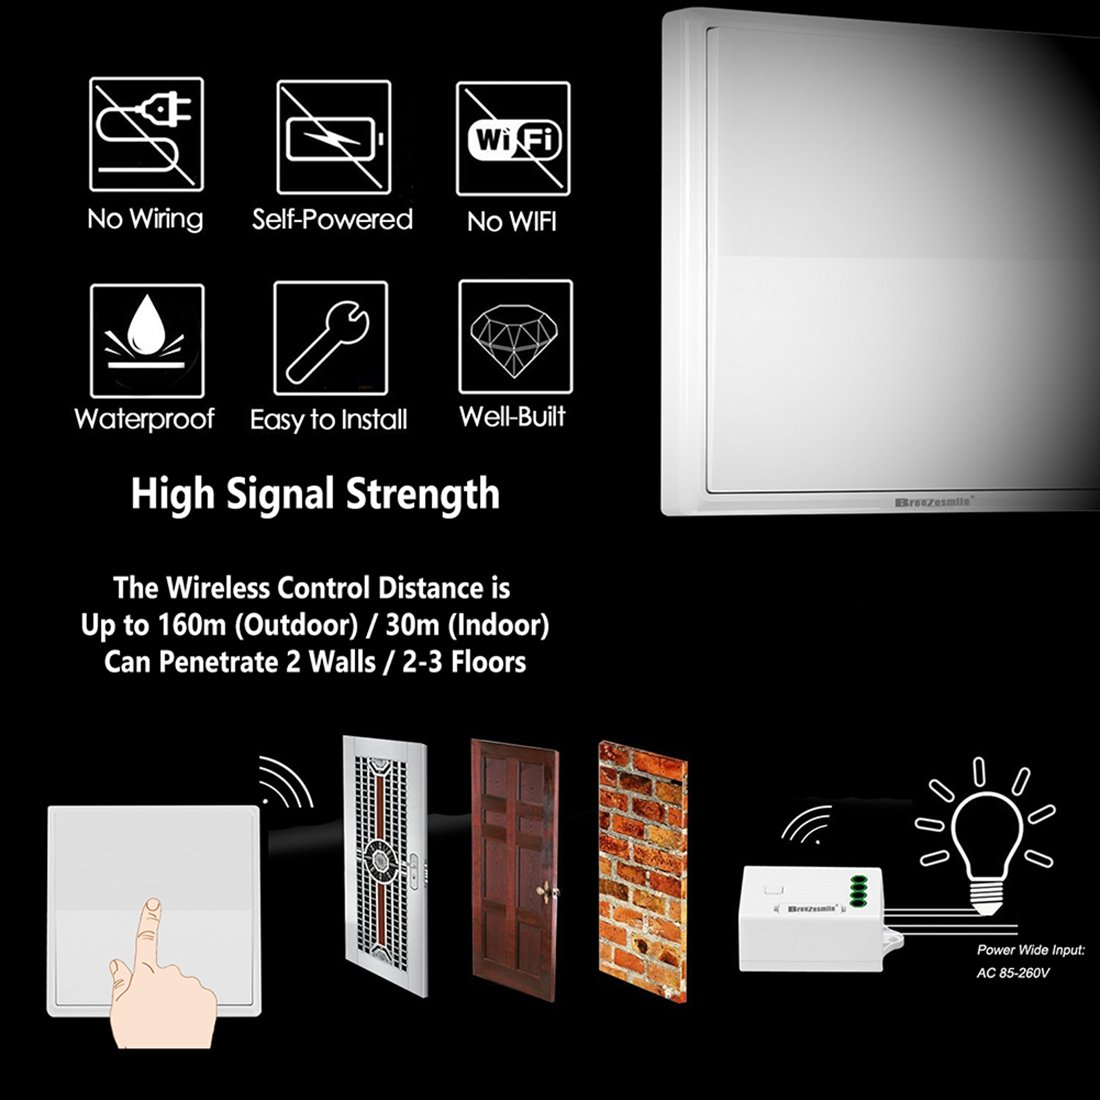 Breezesmile Wireless Light Switch Kit No Battery Wiring Quick A Rf Thermostat Create Or Relocate On Off For Lamp Fan Fixtures Self Powered Remote